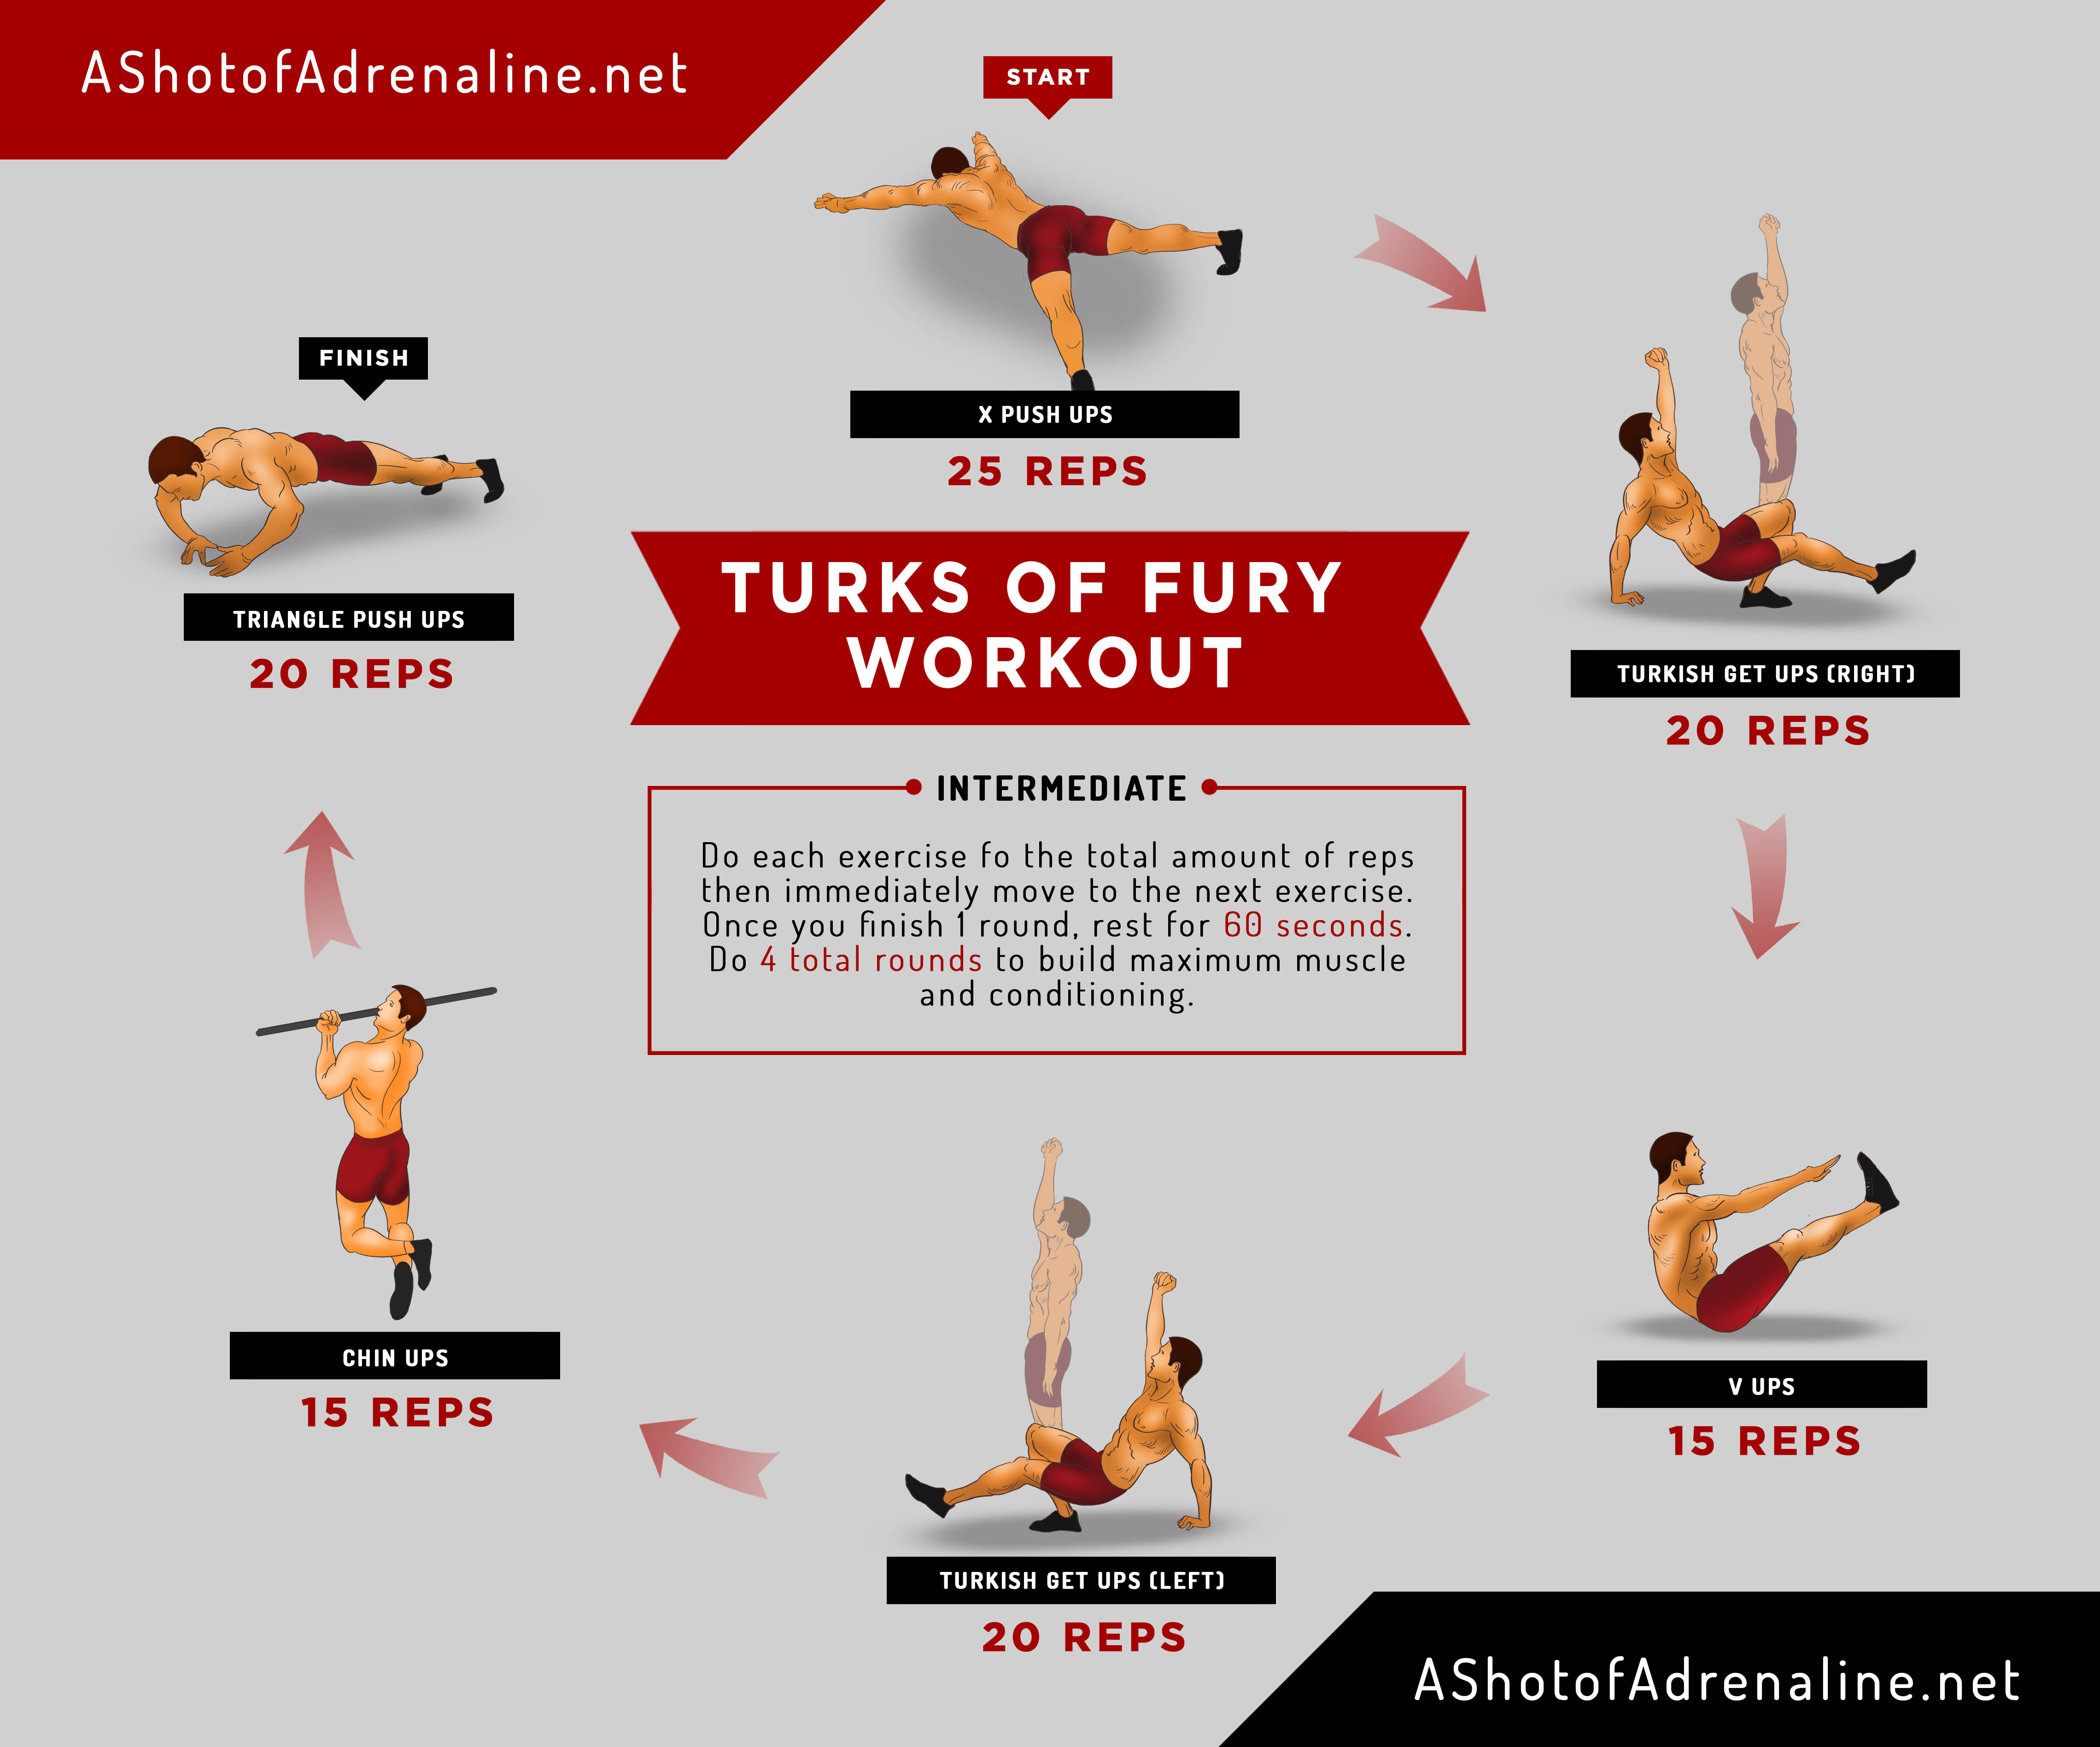 The Full Body Turks Of Fury Workout